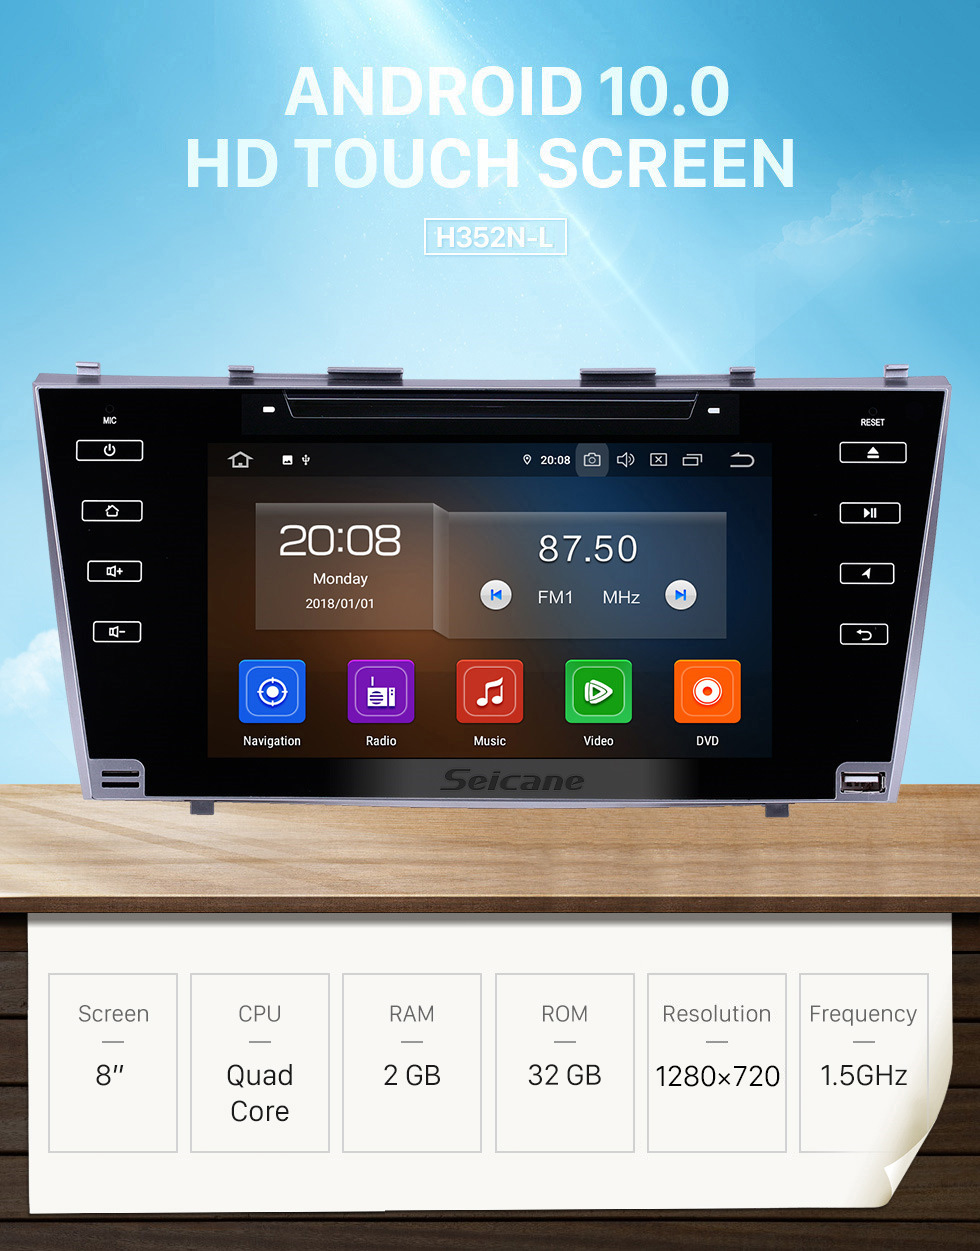 Seicane 8 inch 2007-2011 Toyota Camry Android 10.0 GPS Navigation Radio Bluetooth HD Touchscreen AUX Carplay Music support 1080P Digital TV Rear camera